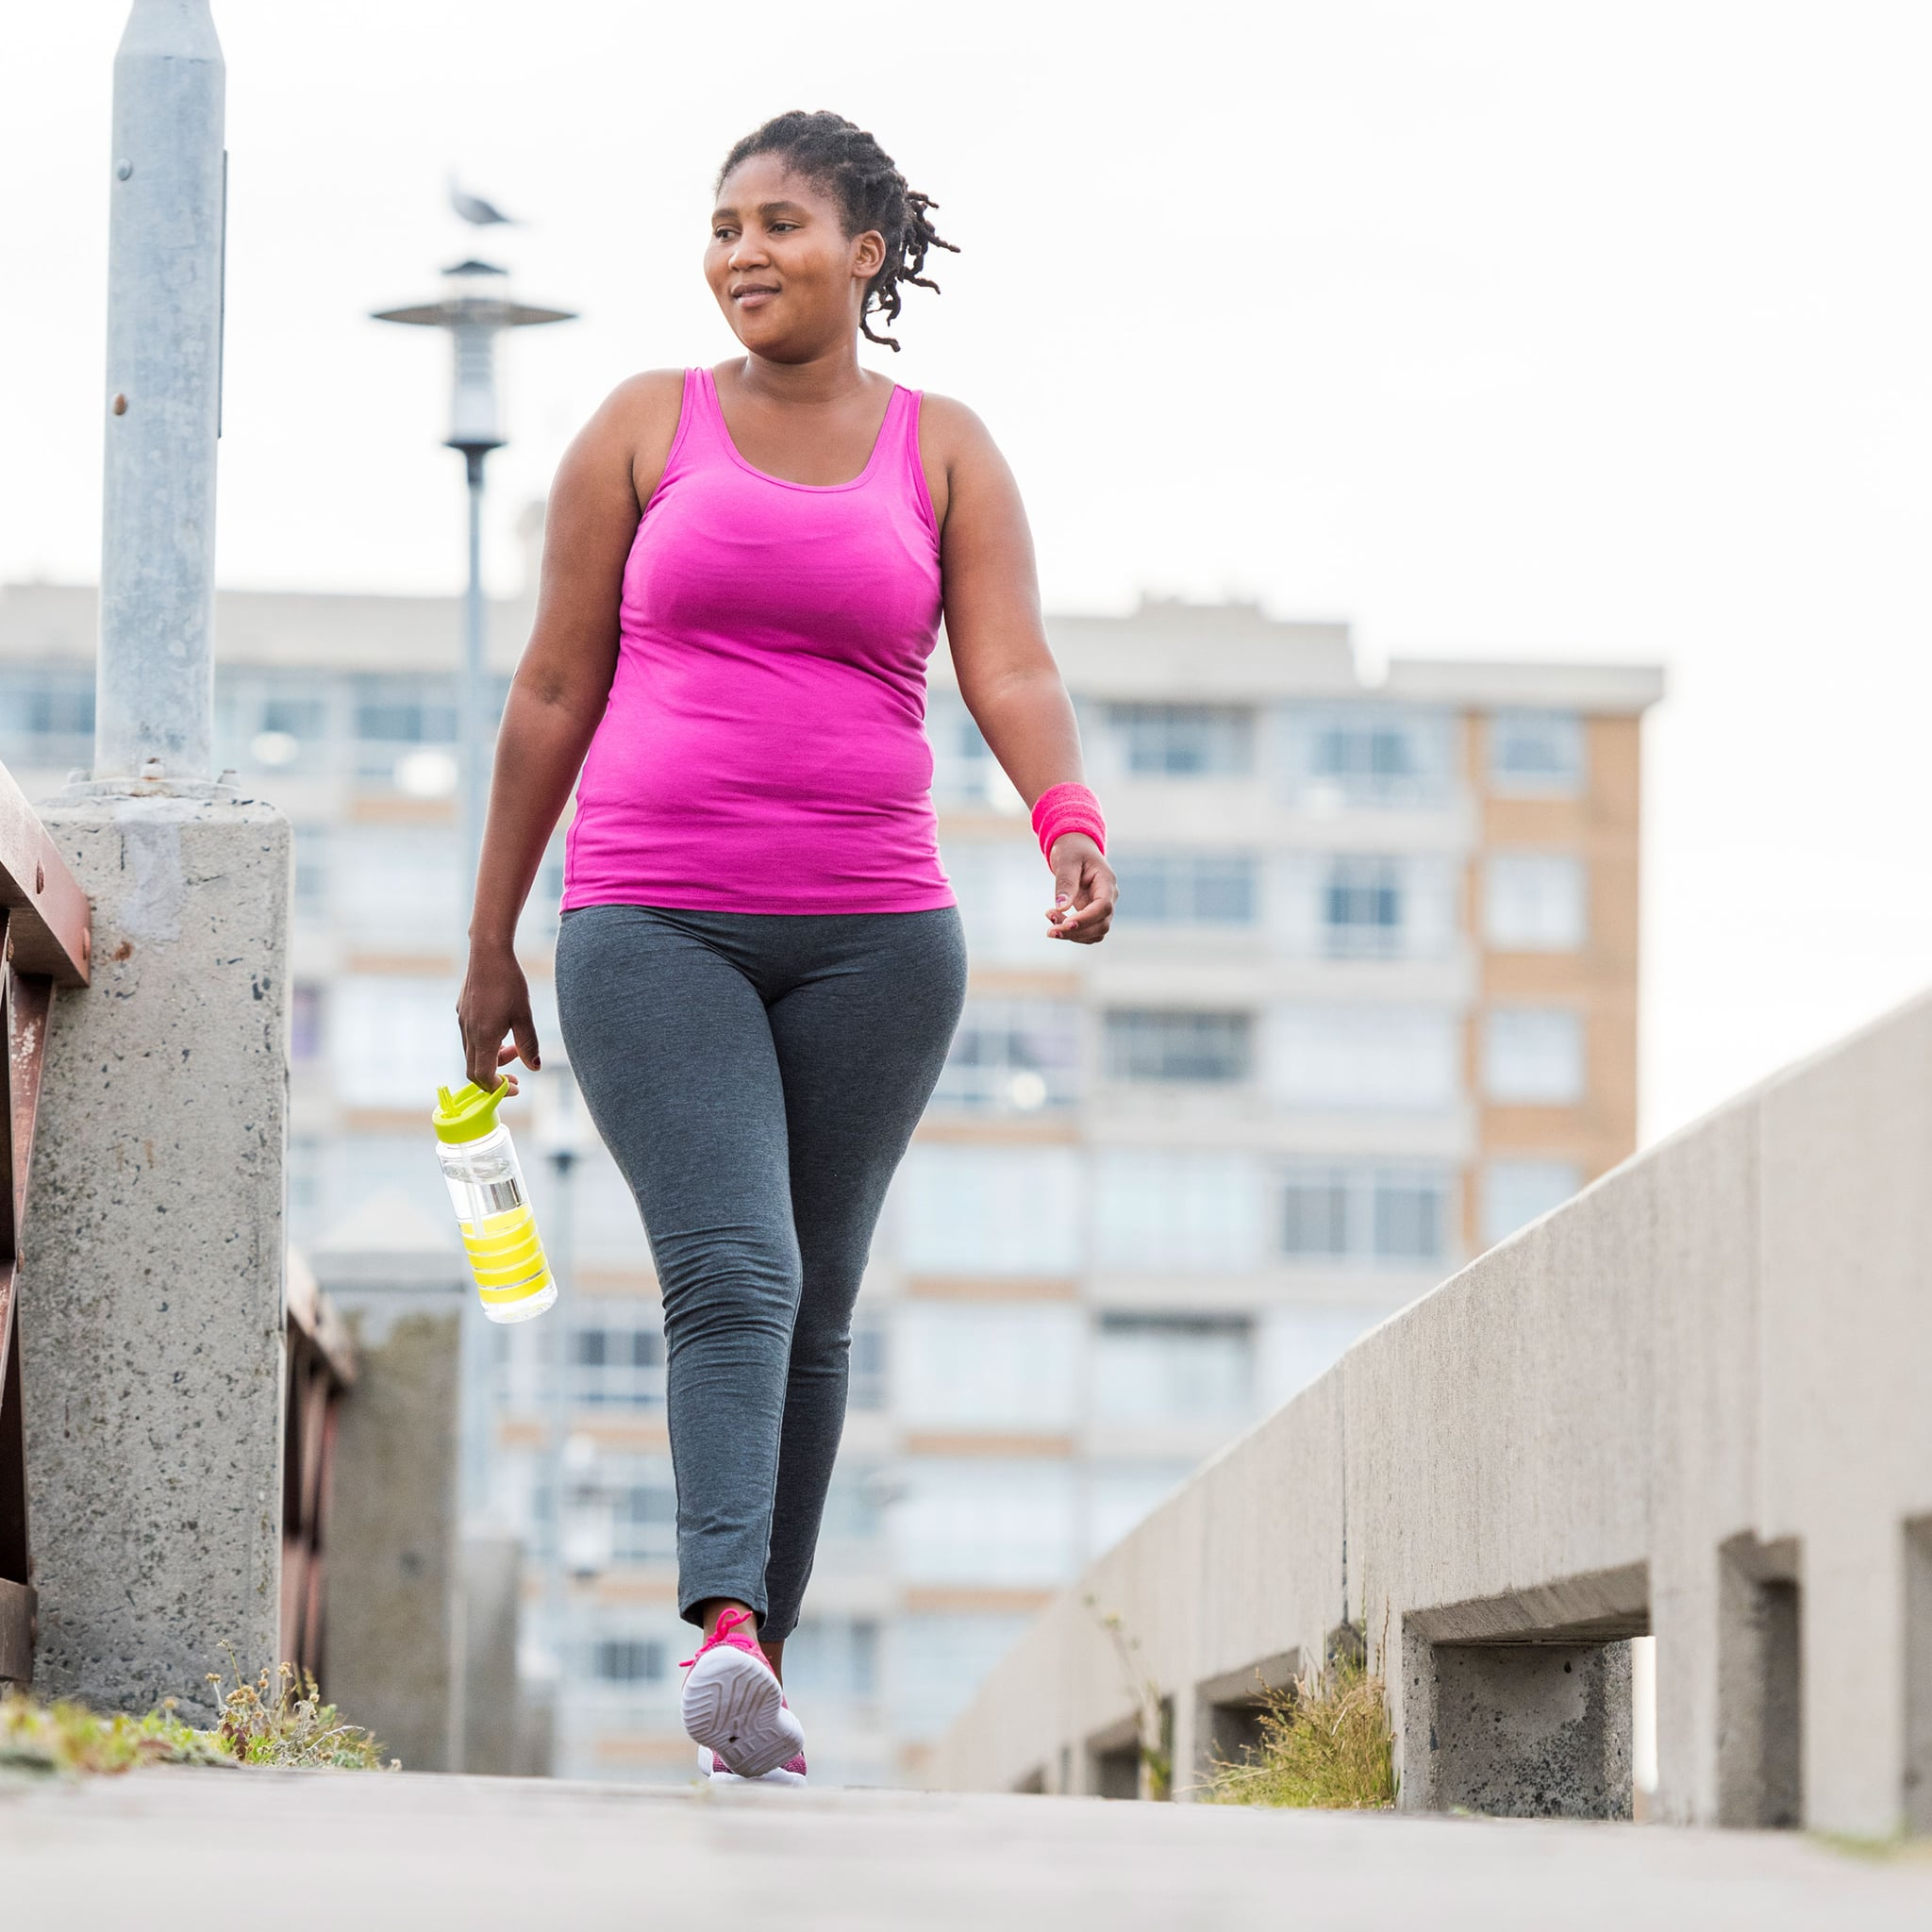 how much should i walk to lose weight fast